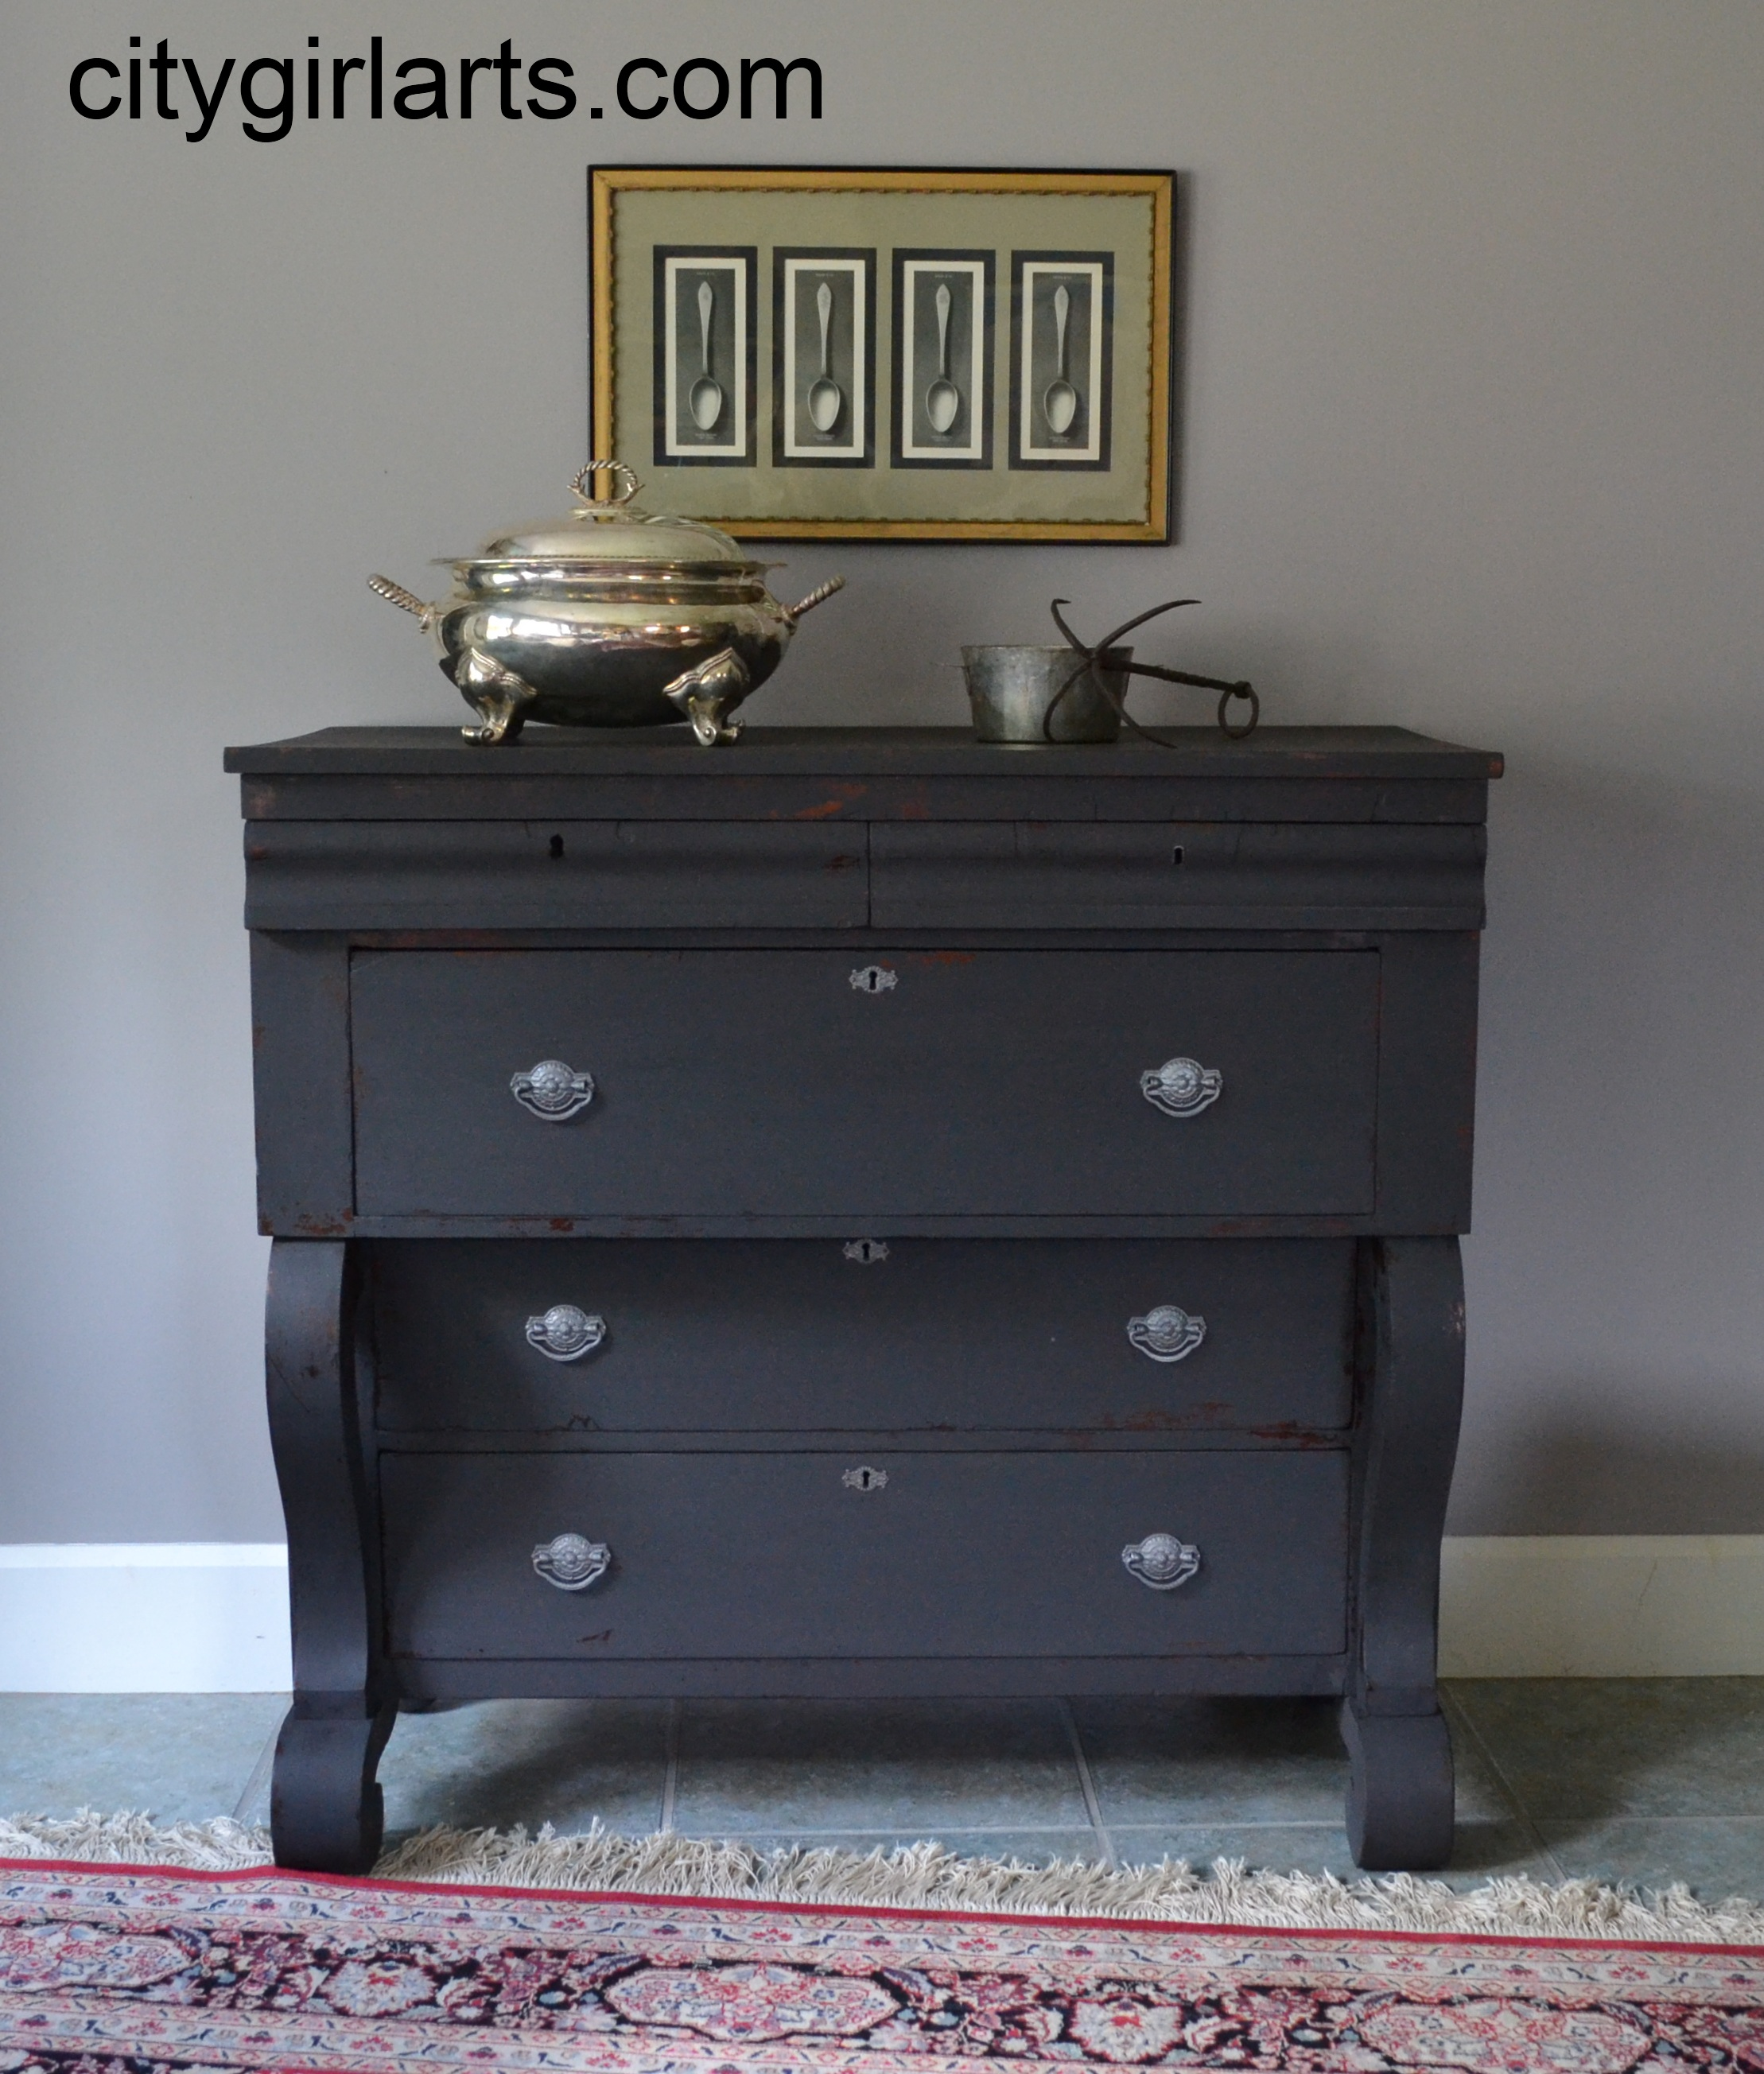 Antique Empire Dresser in Milk Paint SOLD